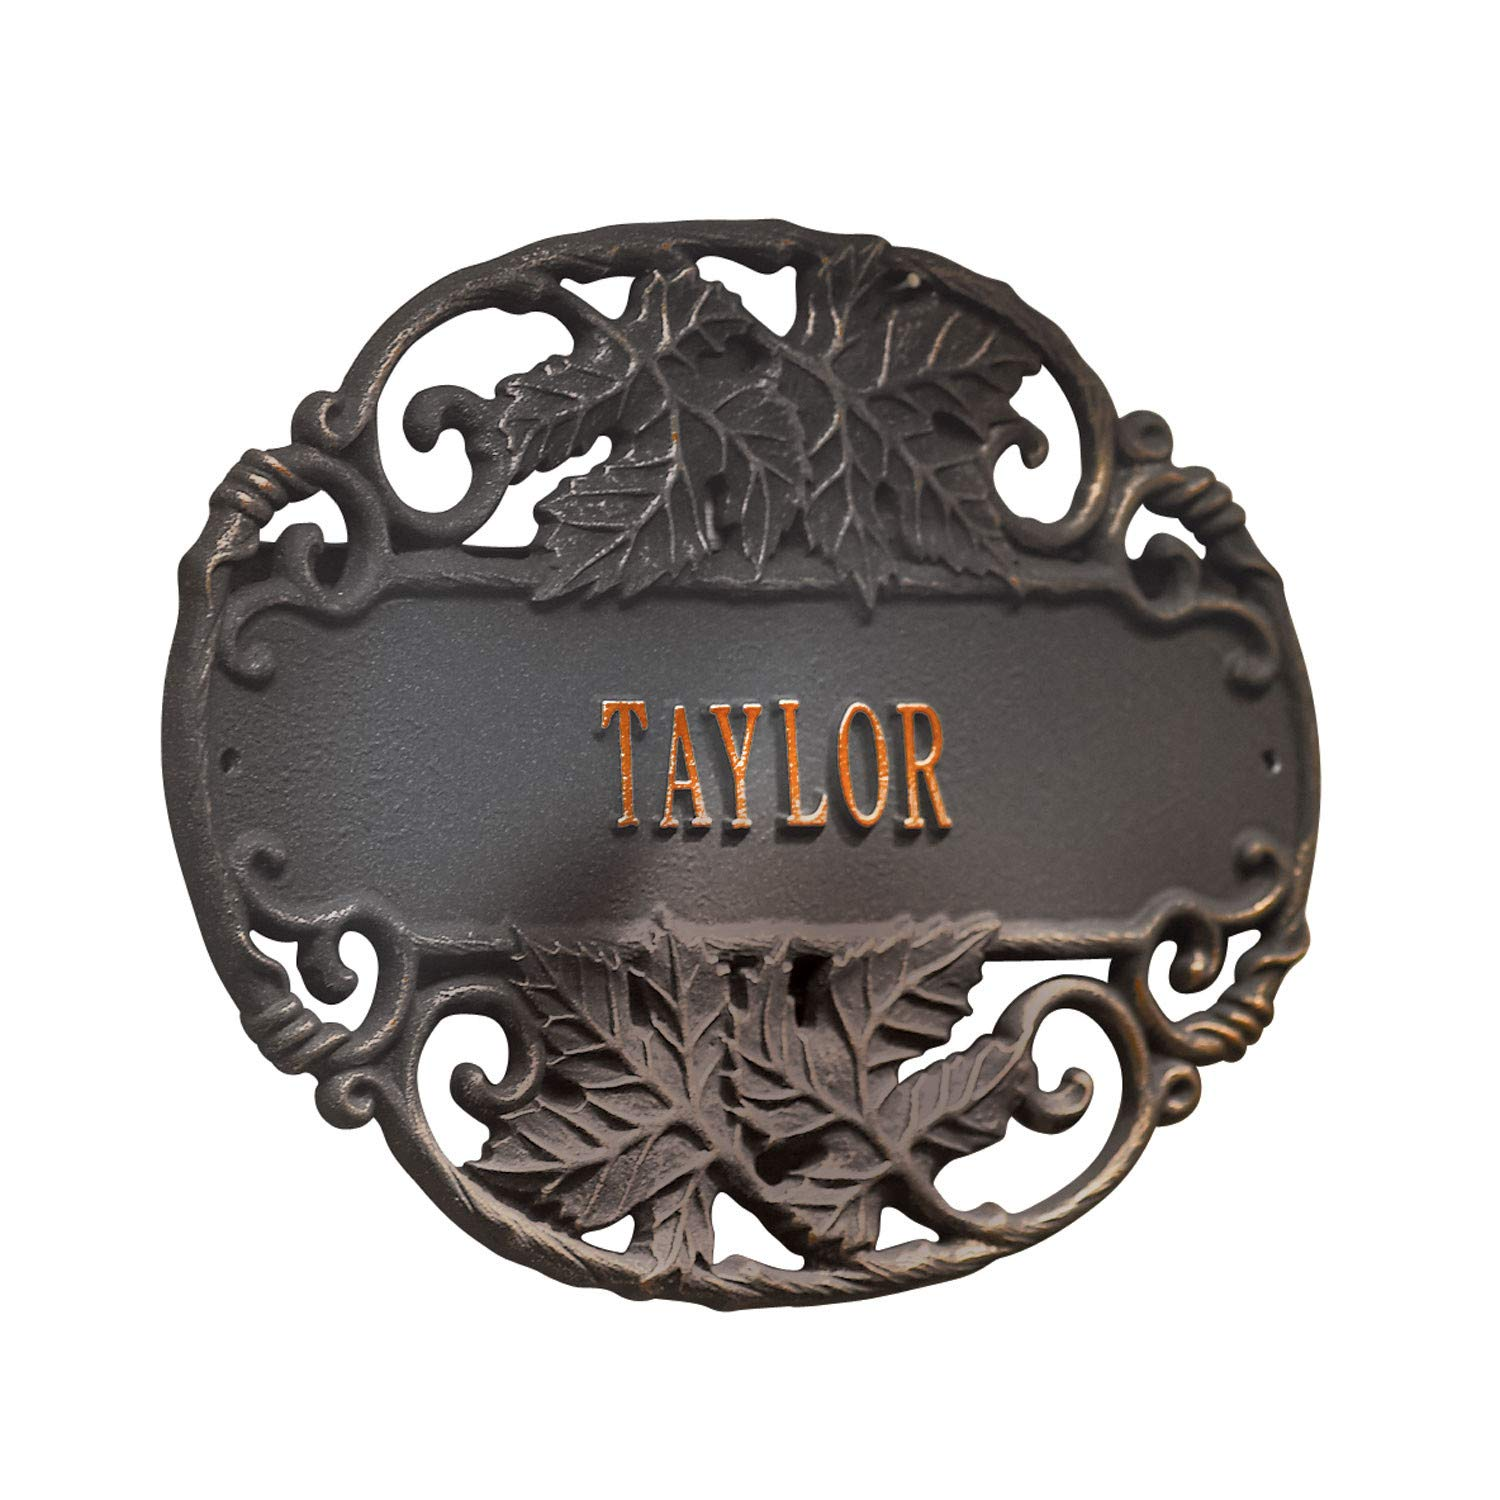 Whitehall Personalized Twining Vines House Sign - Custom Sand-Cast Recycled Aluminum Plaque - Weather Resistant Oil-Rubbed Bronze Finish - 14'' x 10.5''